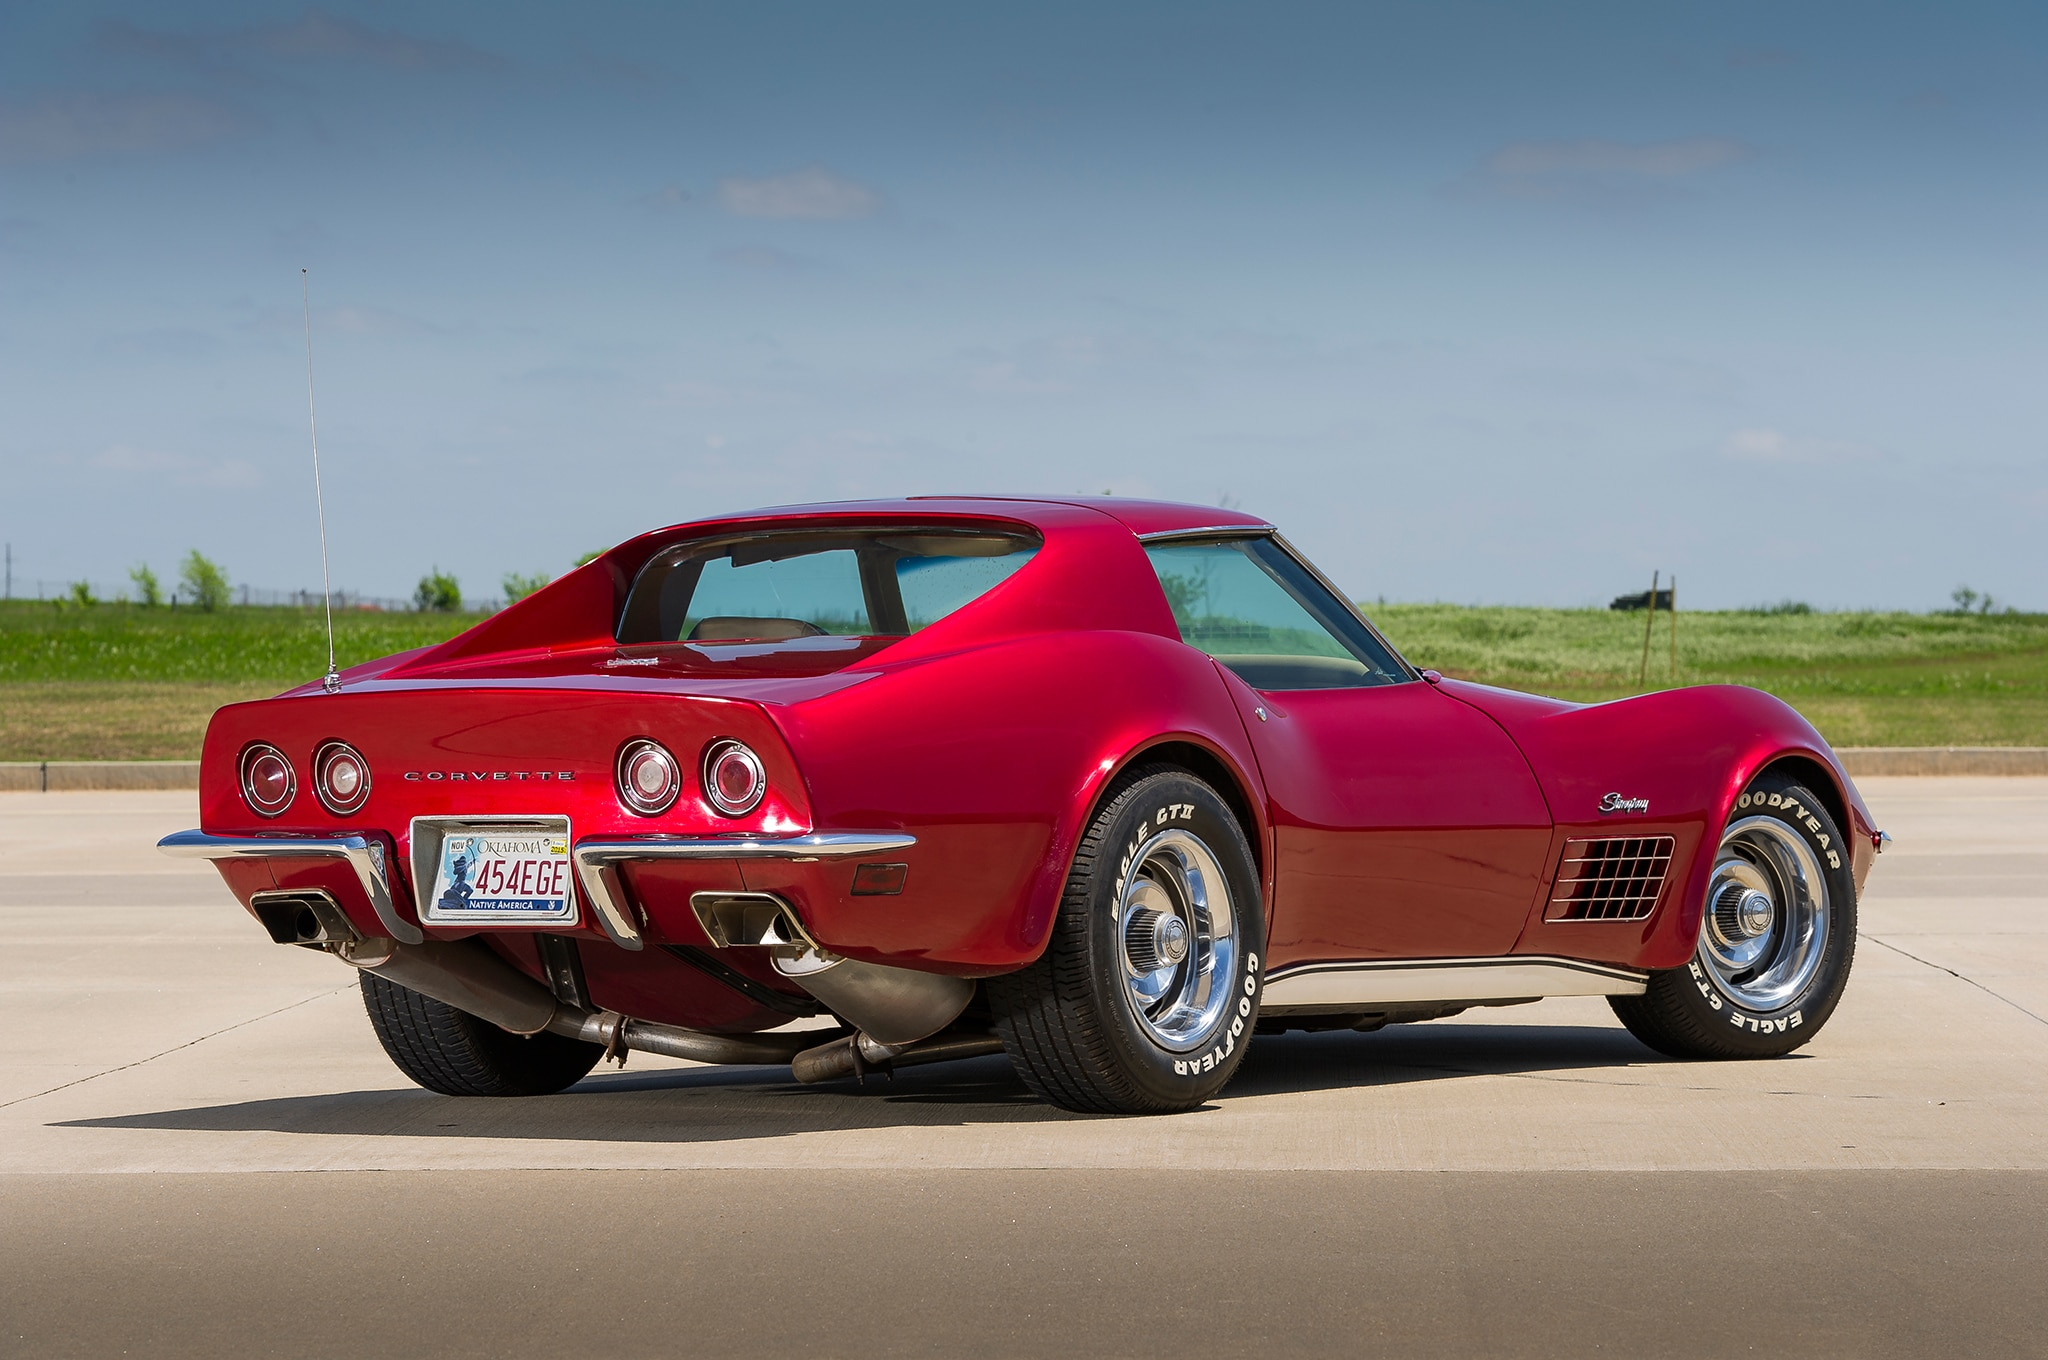 1971 Chevrolet Corvette - Style and (Big Block) Power